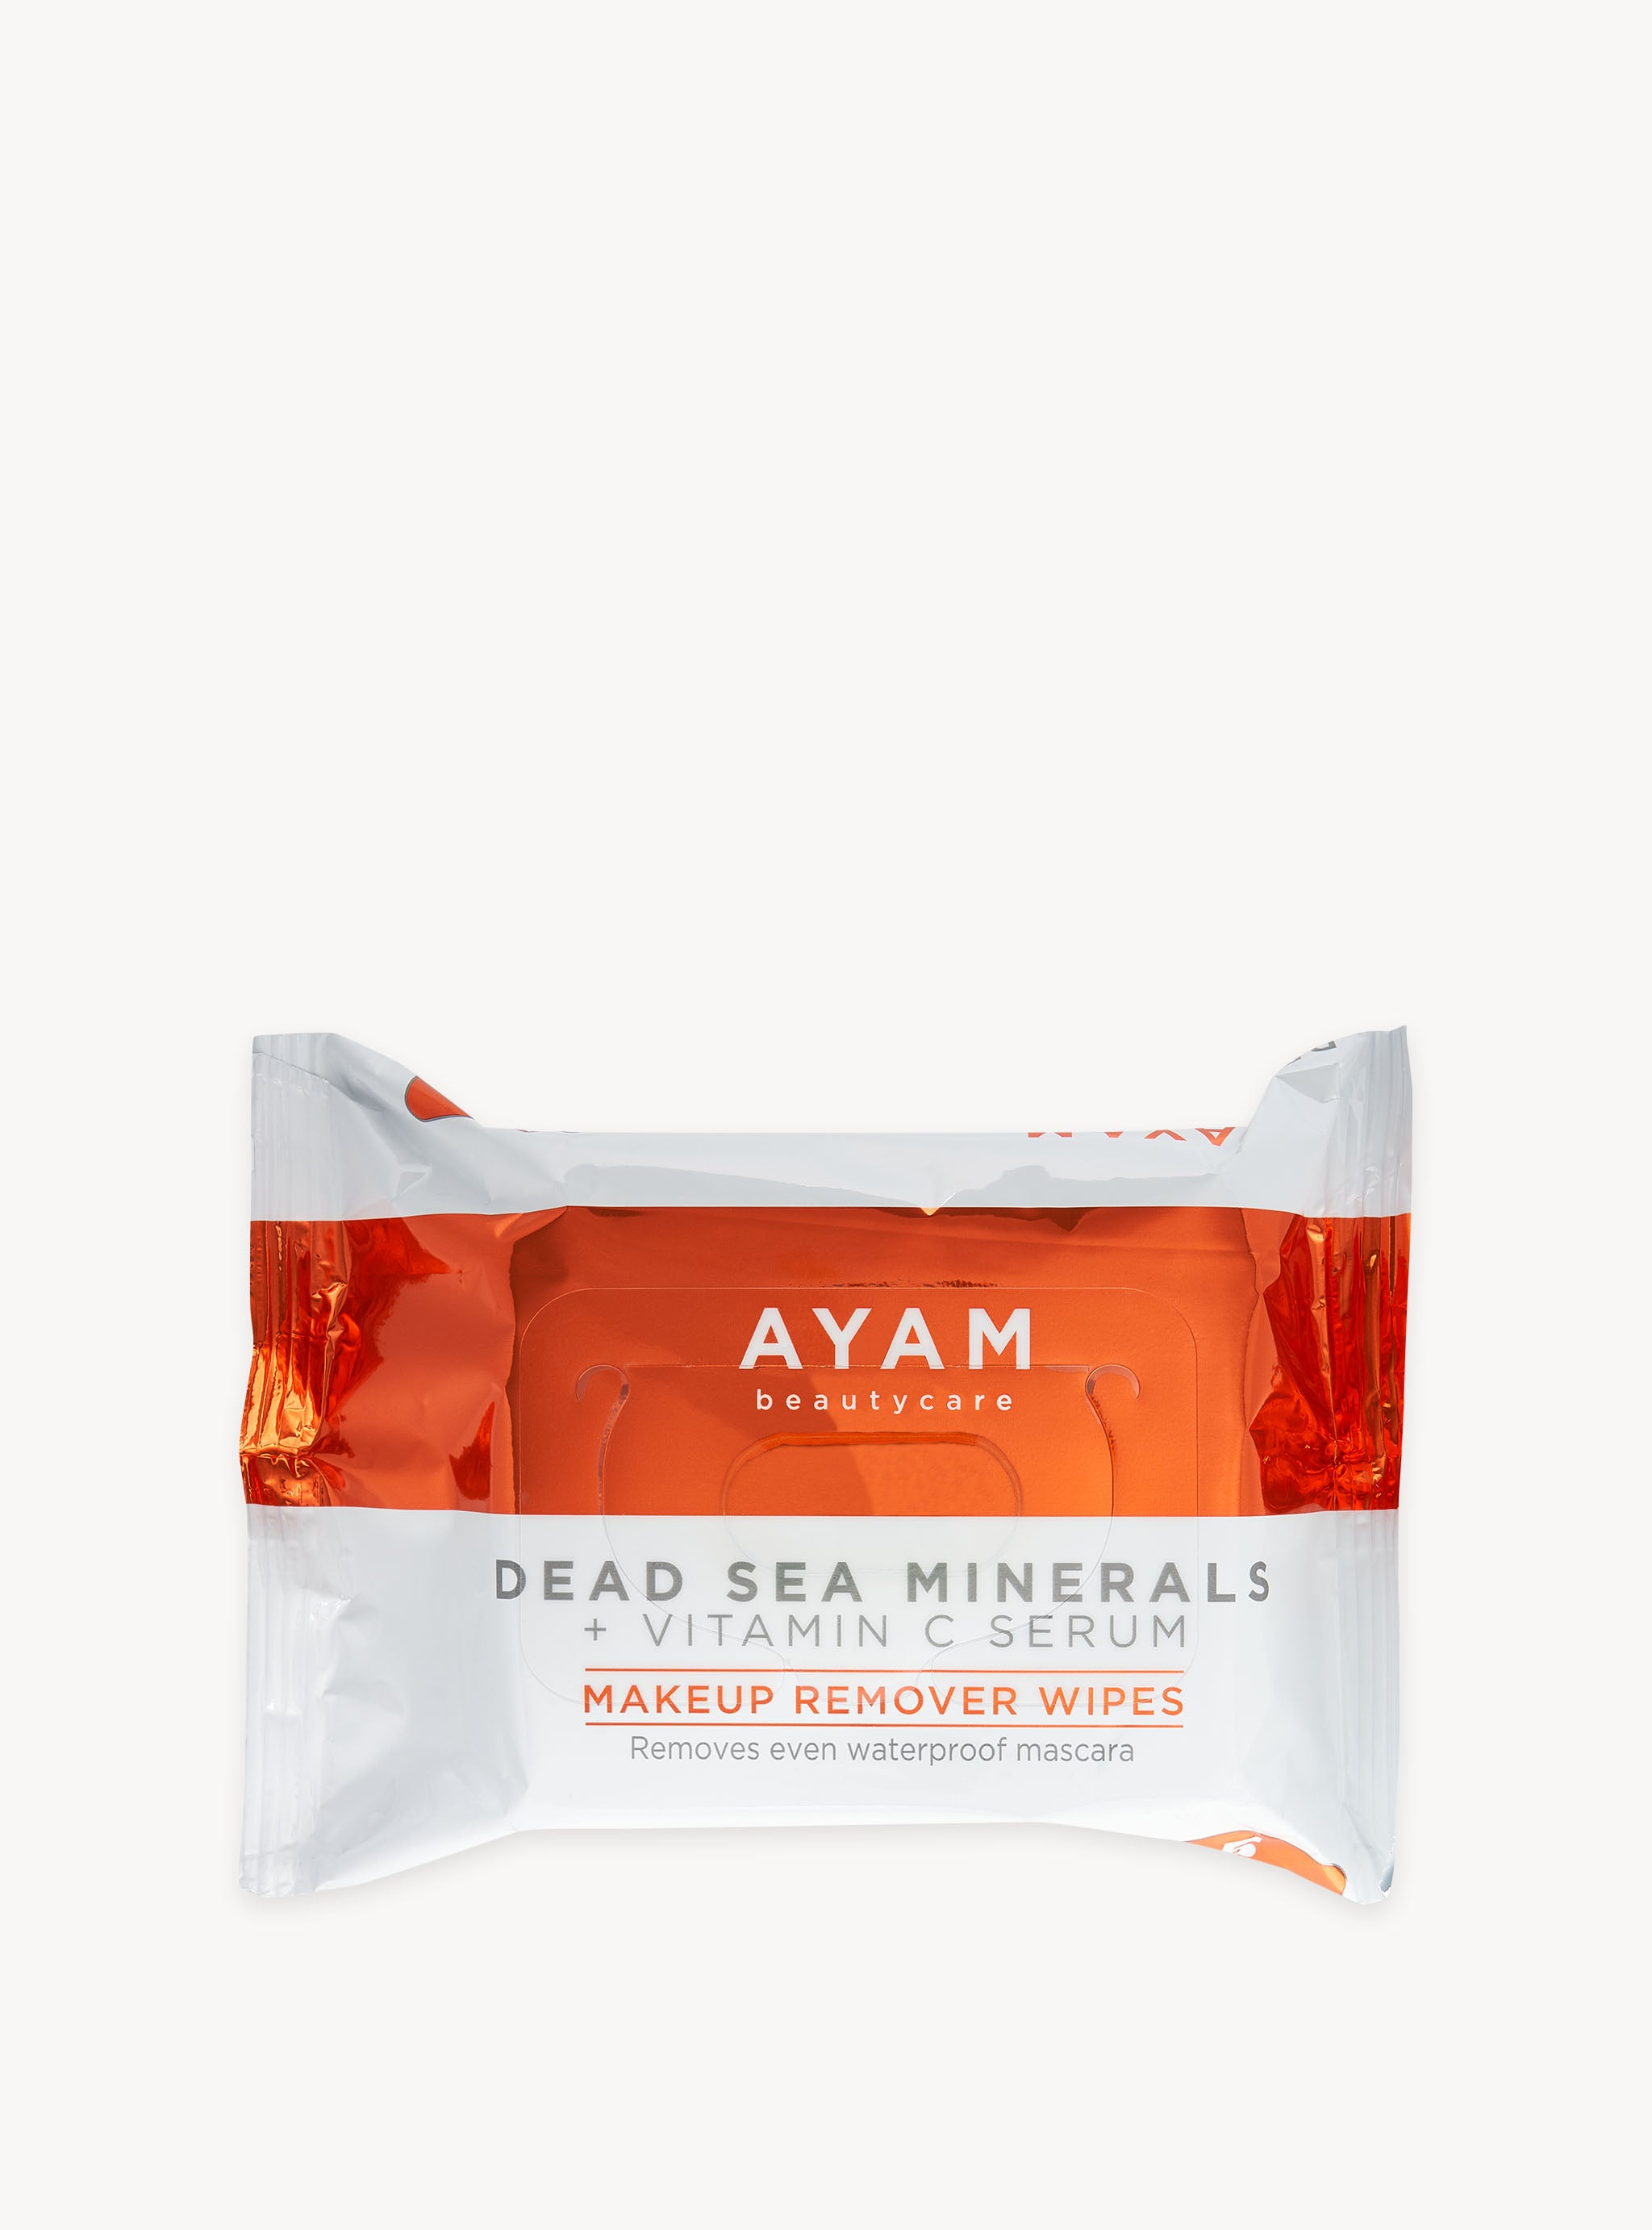 Vitamin C Serum + Dead Sea Minerals - Makeup Remover Wipes